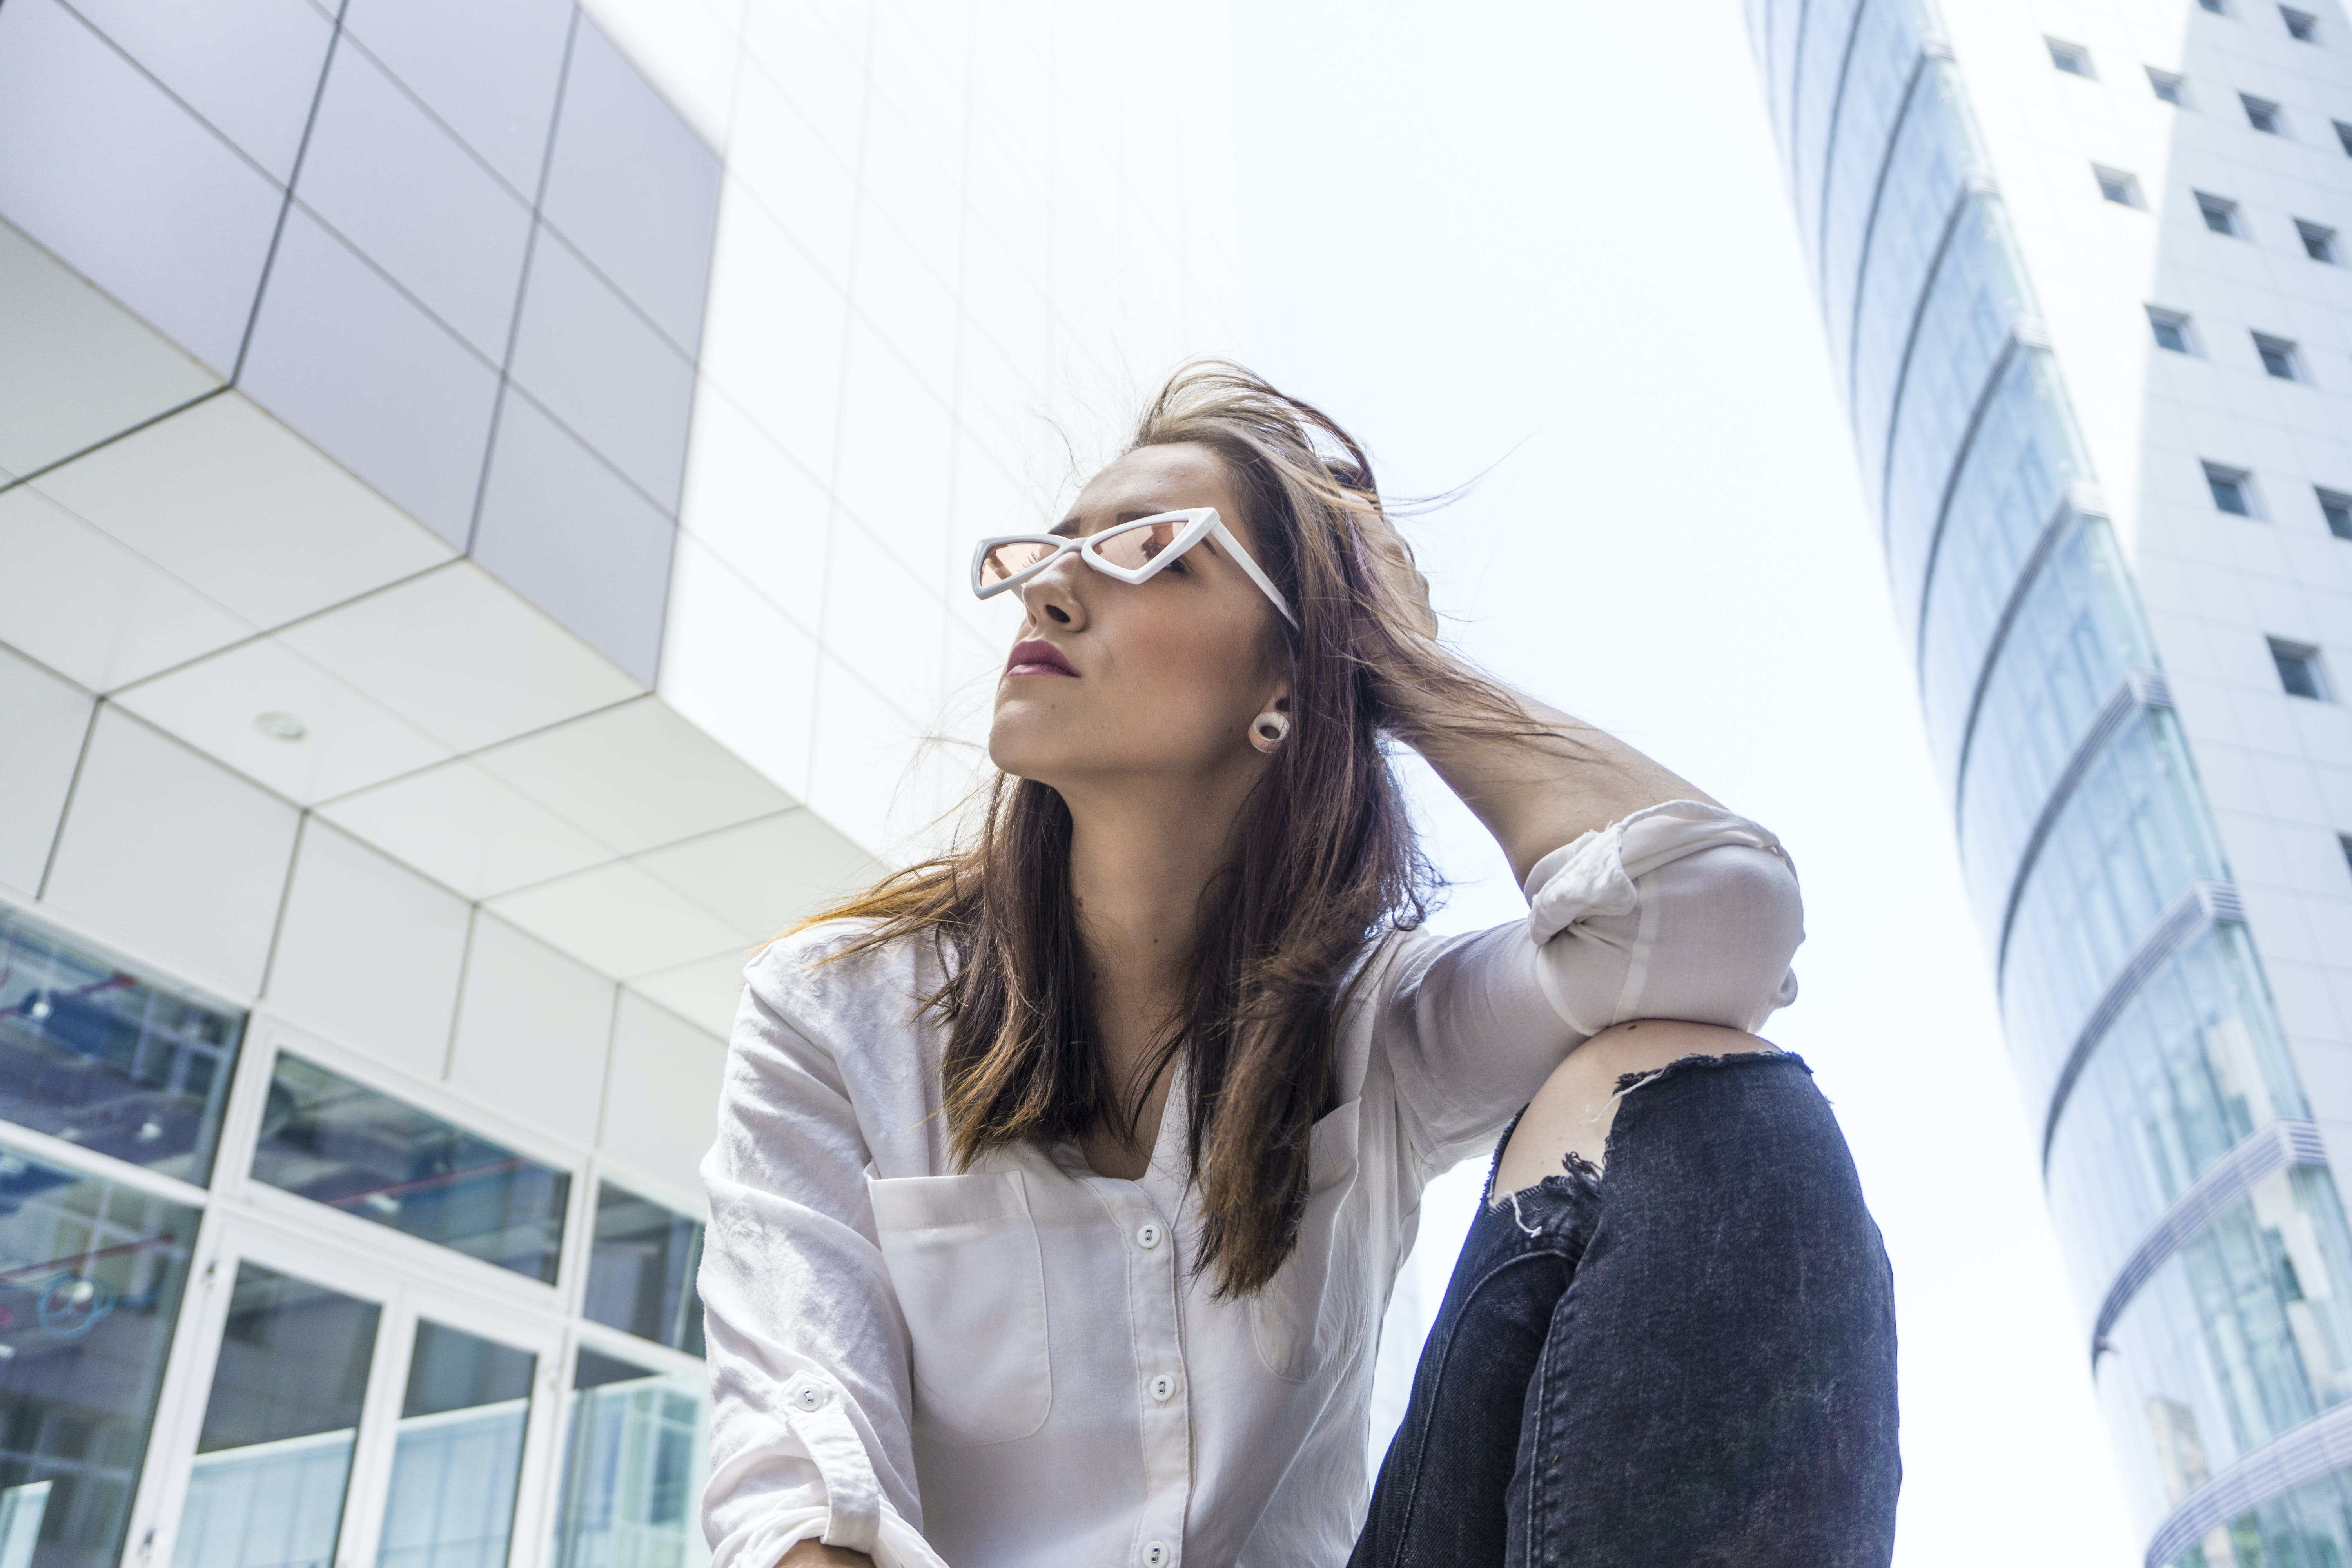 Low Angle Photography of Woman in White Shirt Sitting Beside Buildings